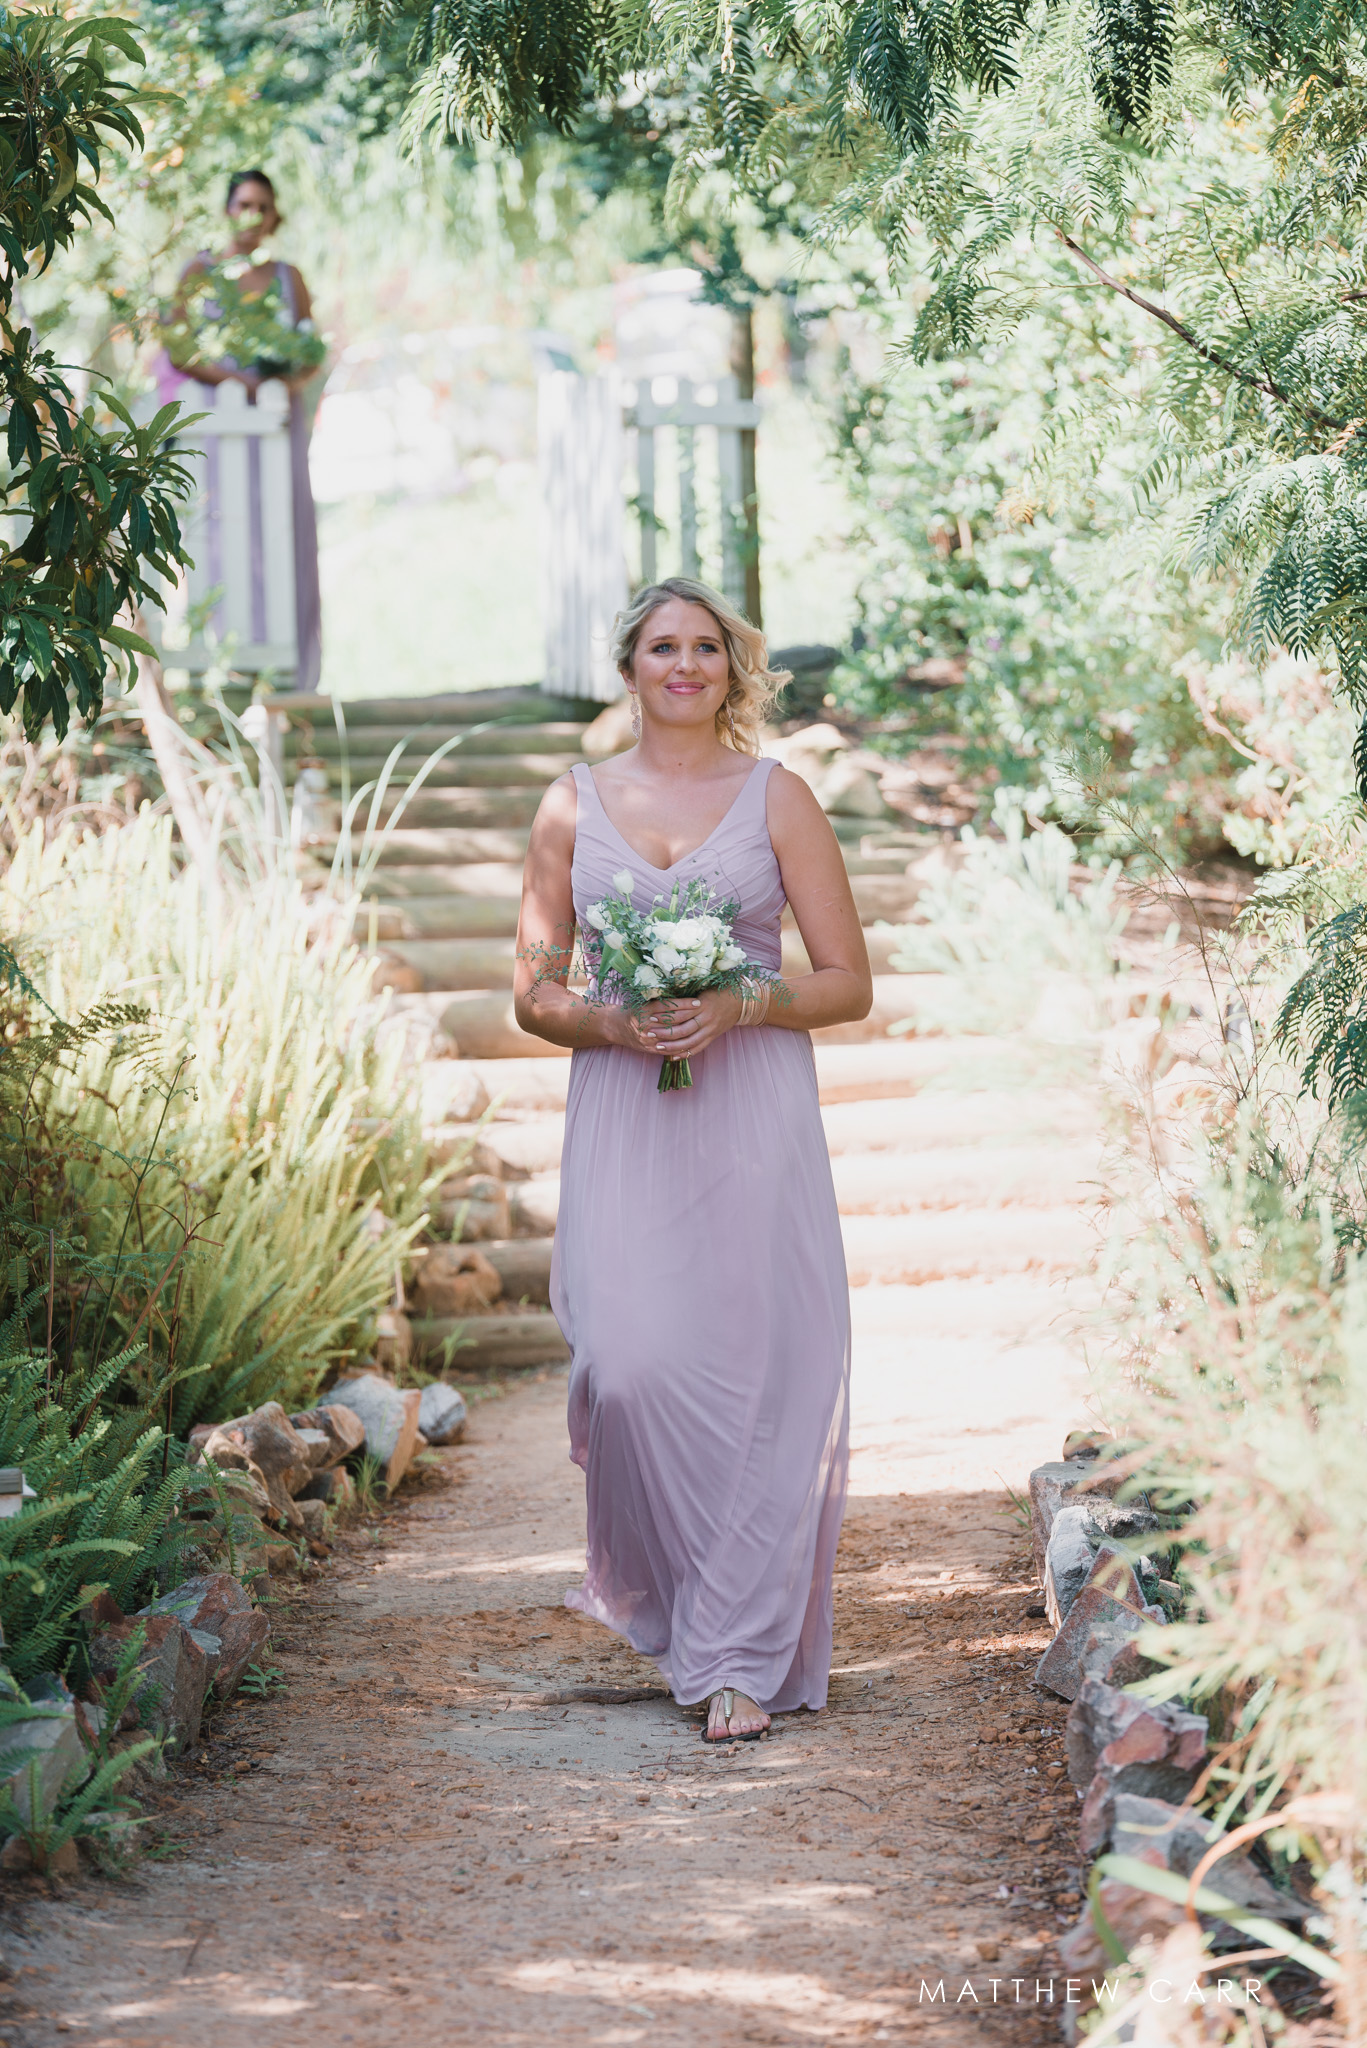 ceremony & after - low res (viewing, social media) (13 of 111).JPG